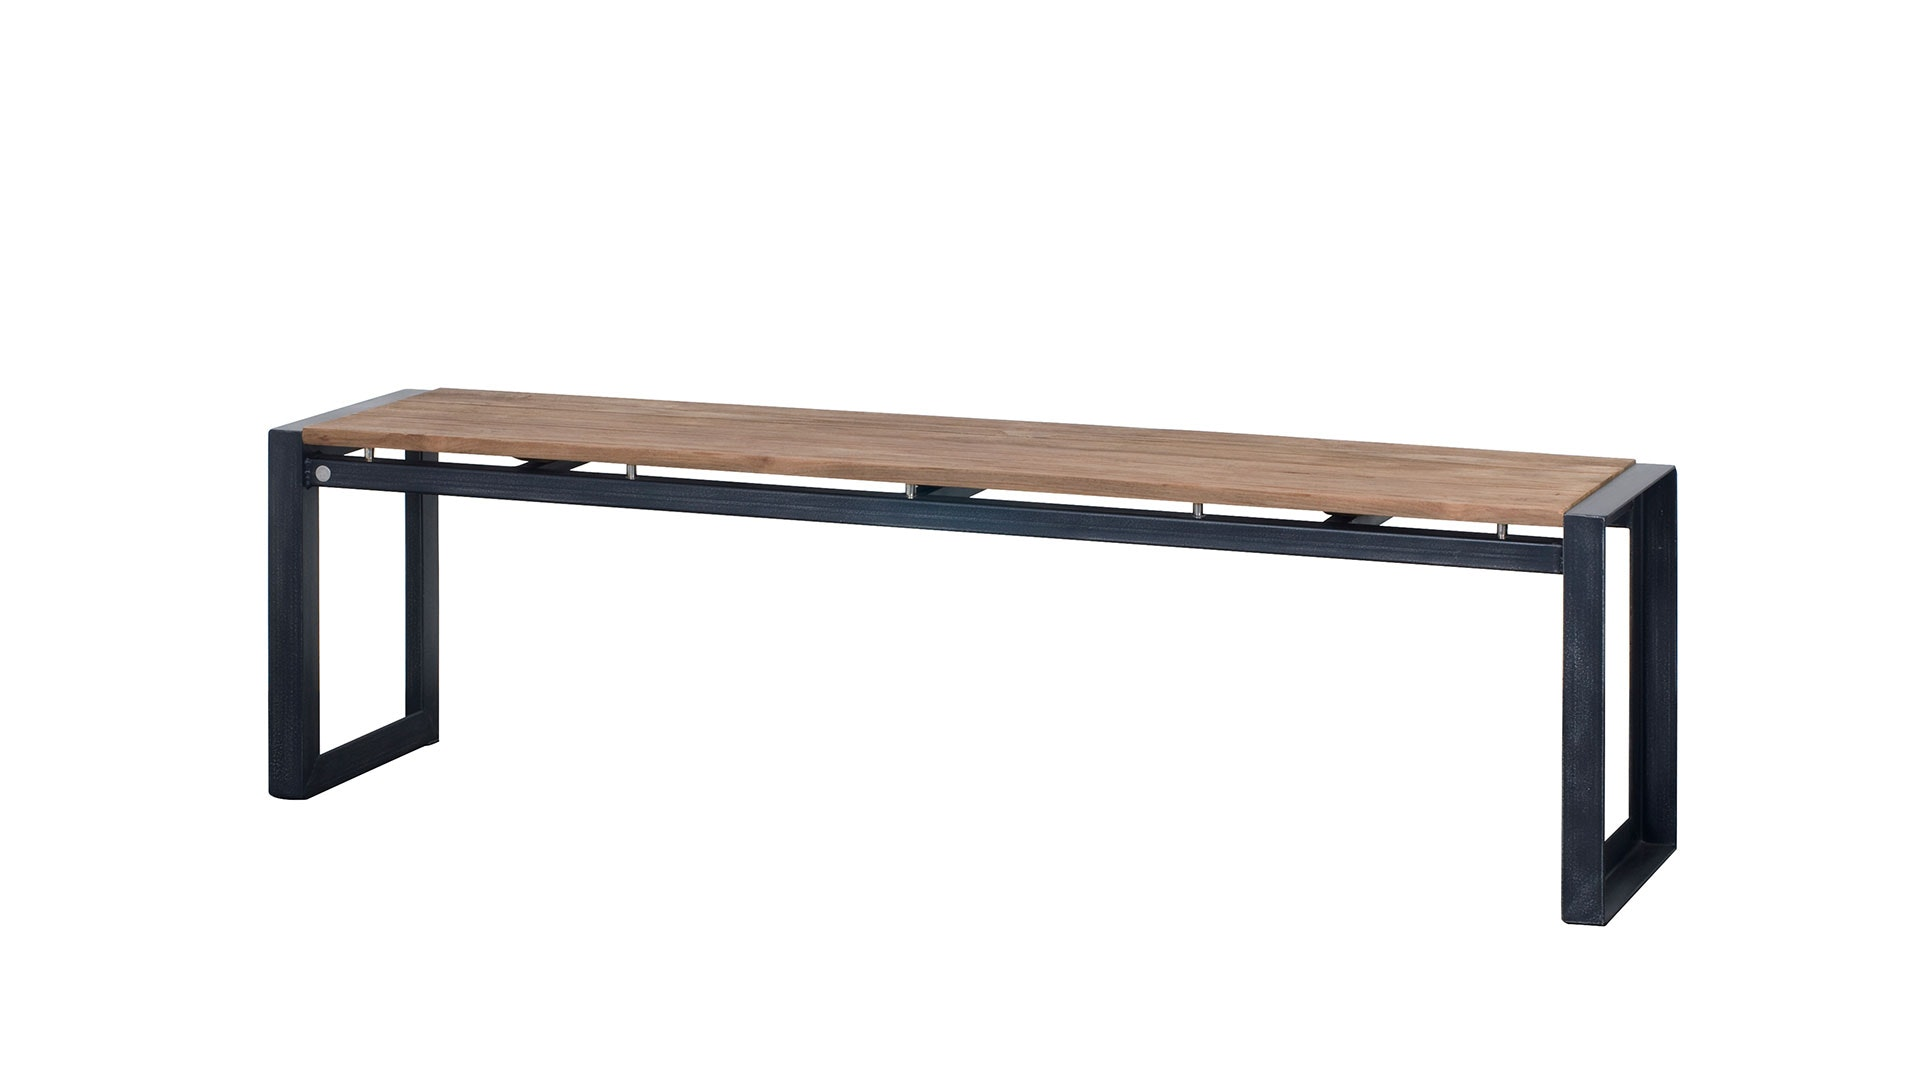 Fendy 1650mm Bench Seat by D Bodhi Furniture